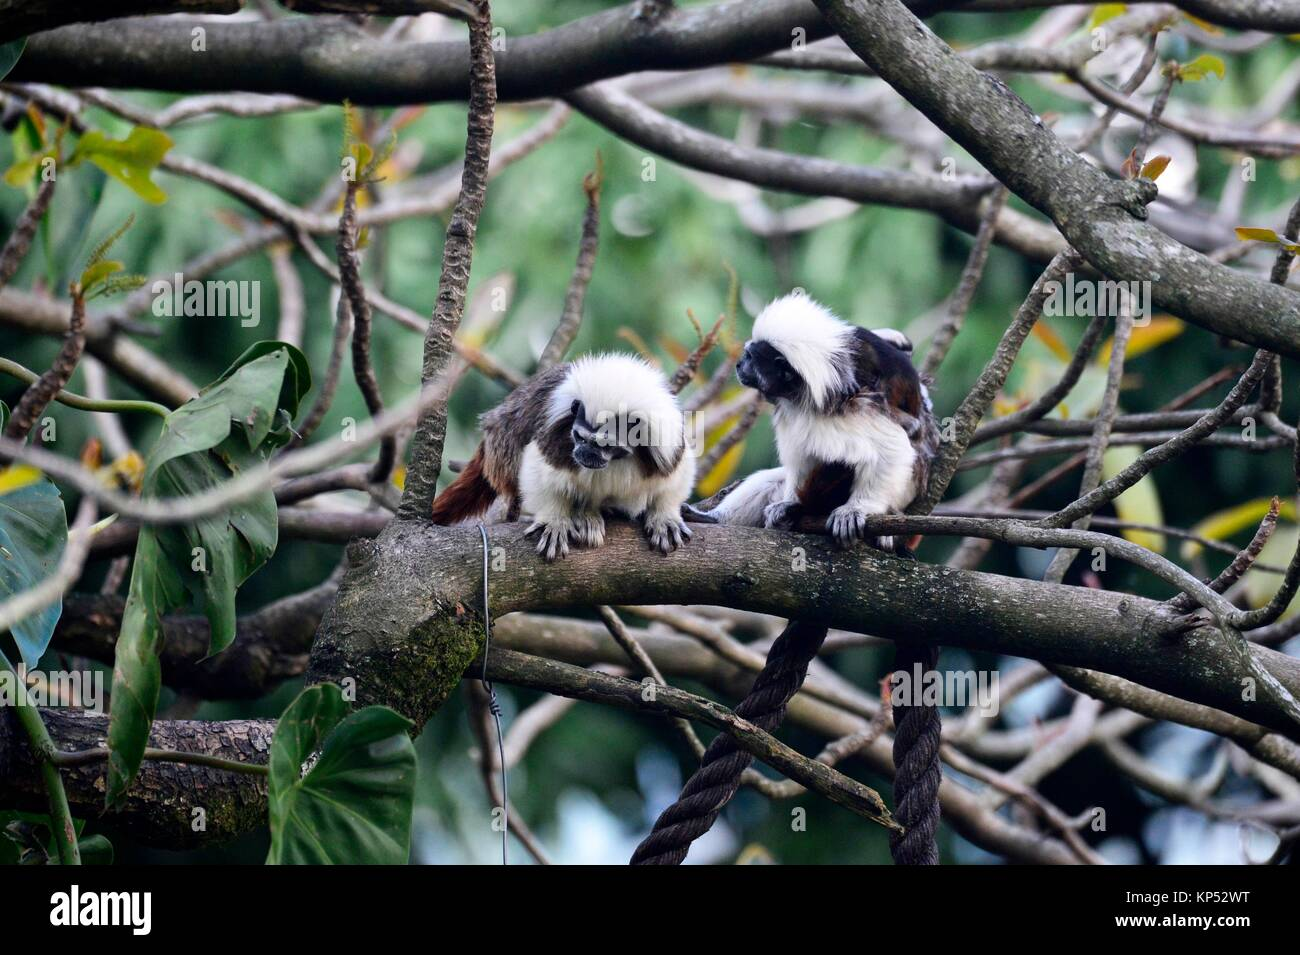 at the zoo in Cali, Colombia, South America. - Stock Image